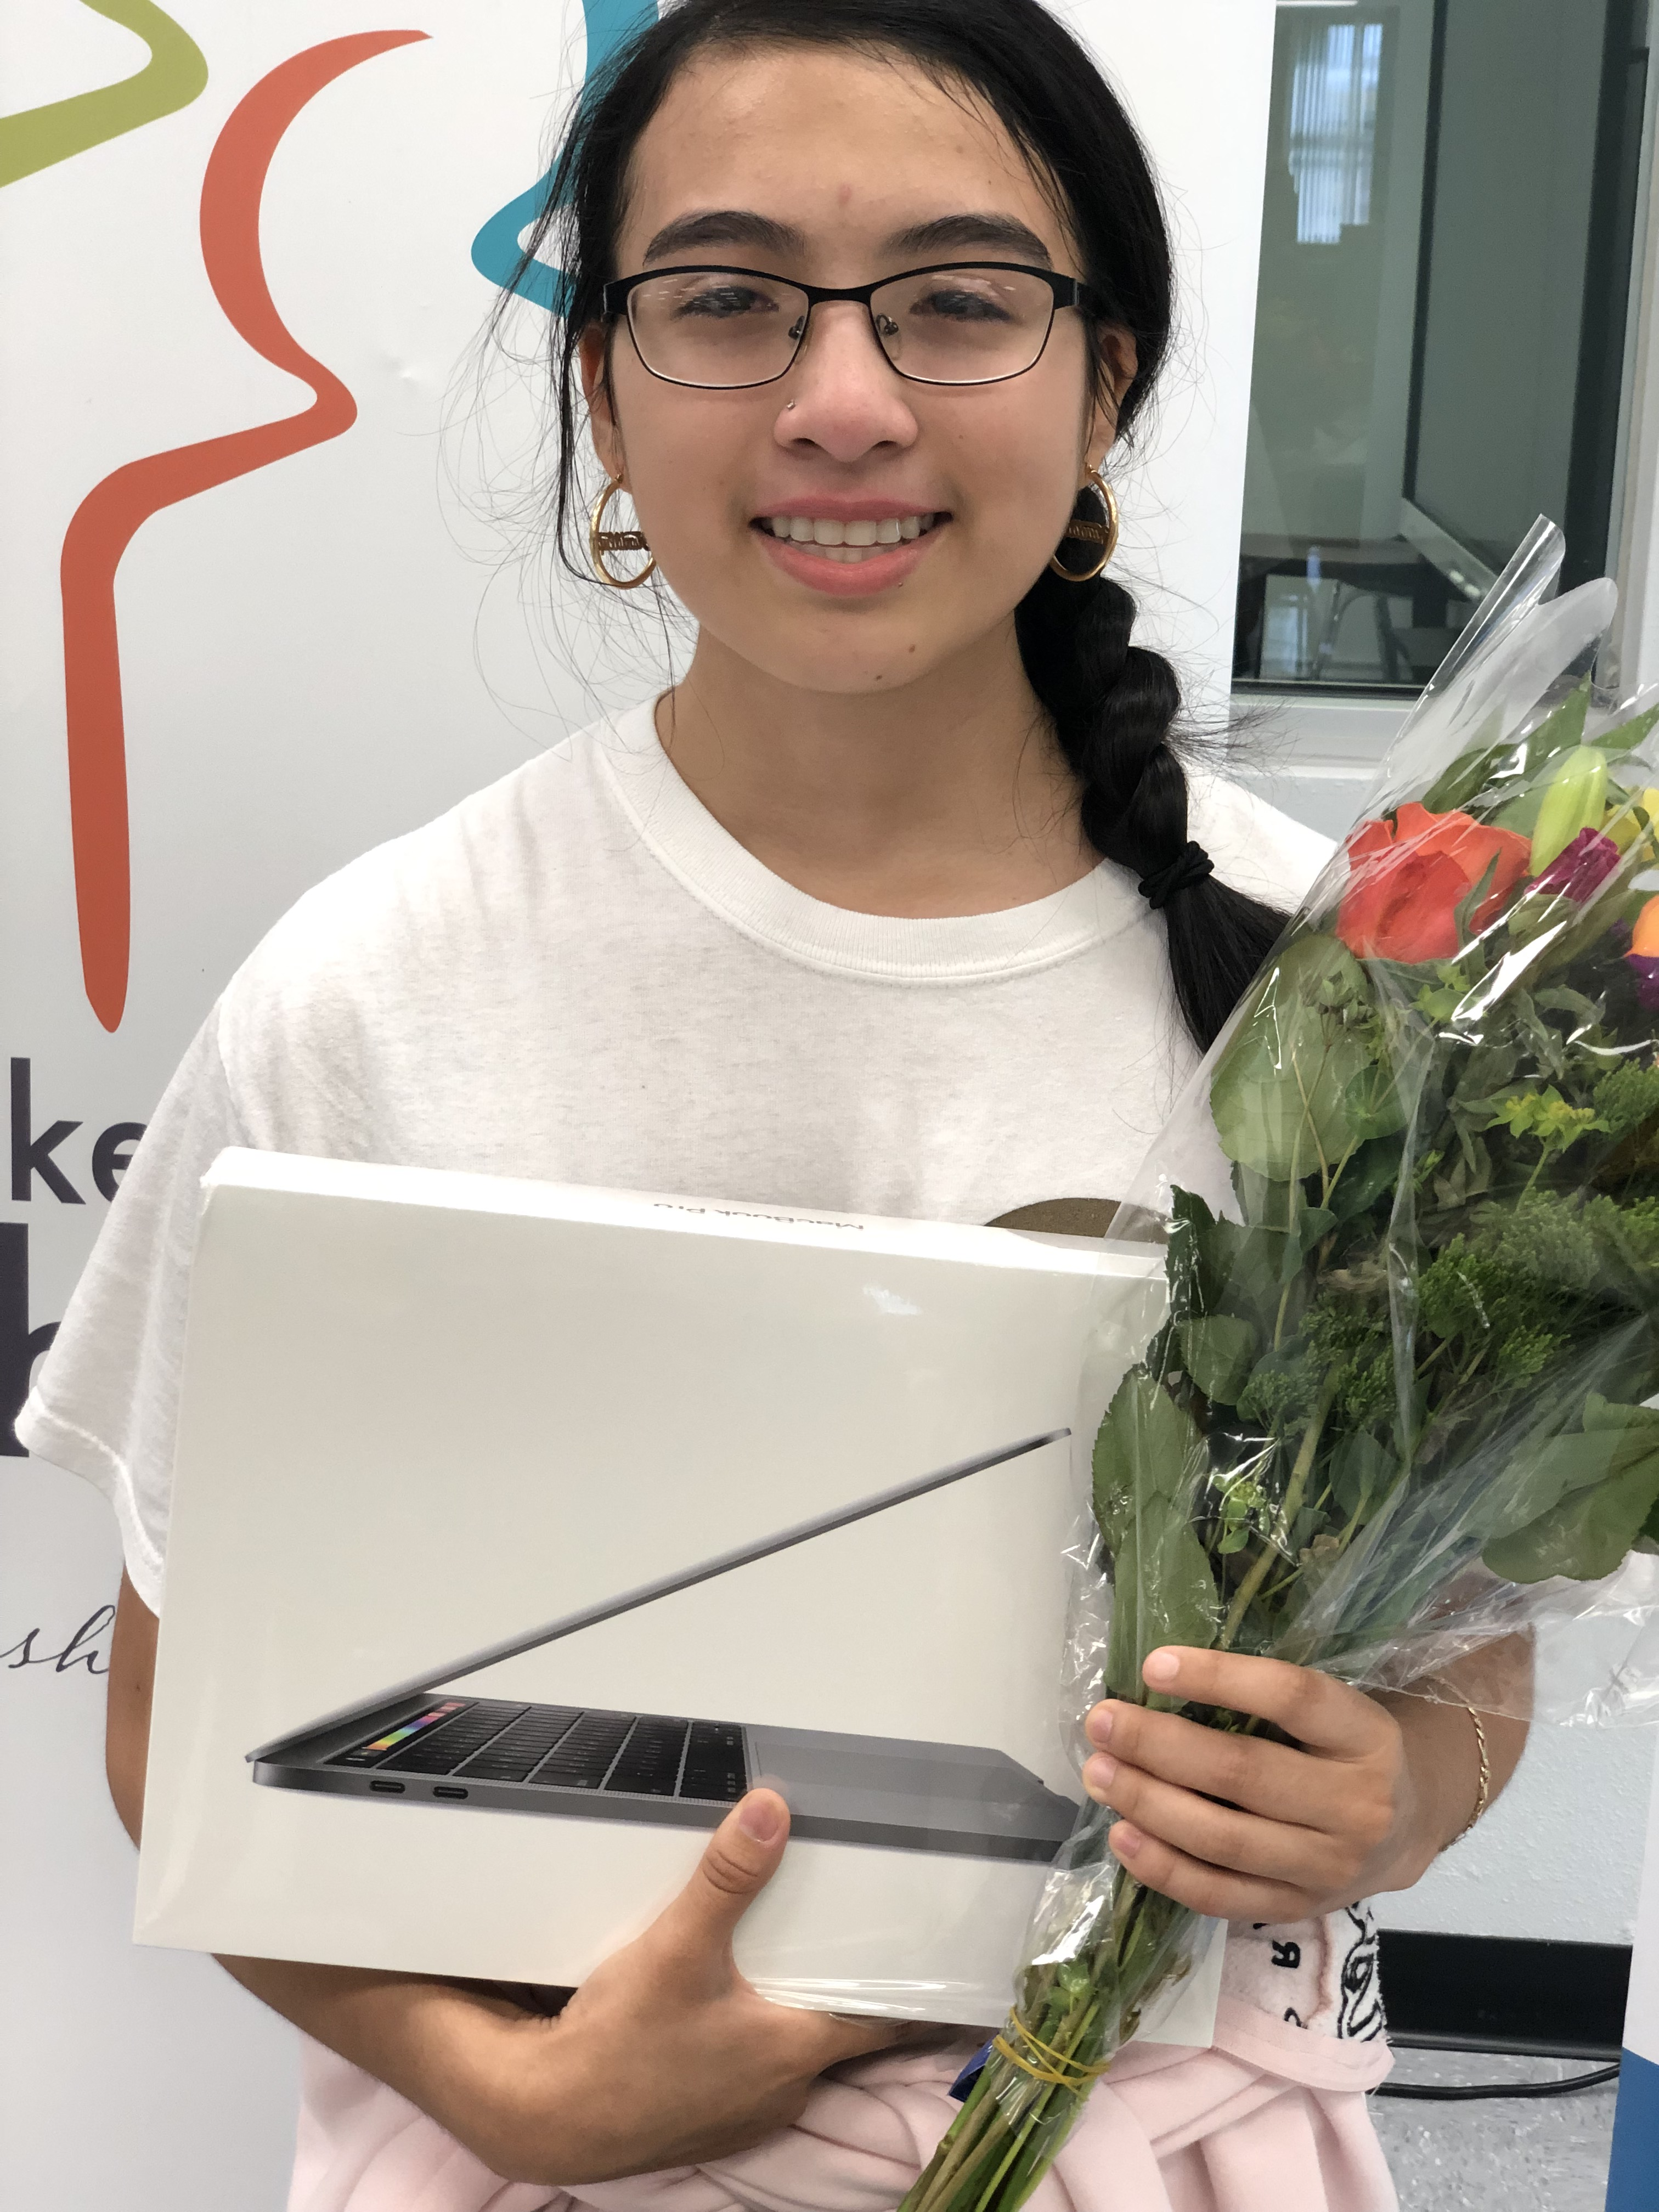 Gema Cervantes holding laptop and flowers